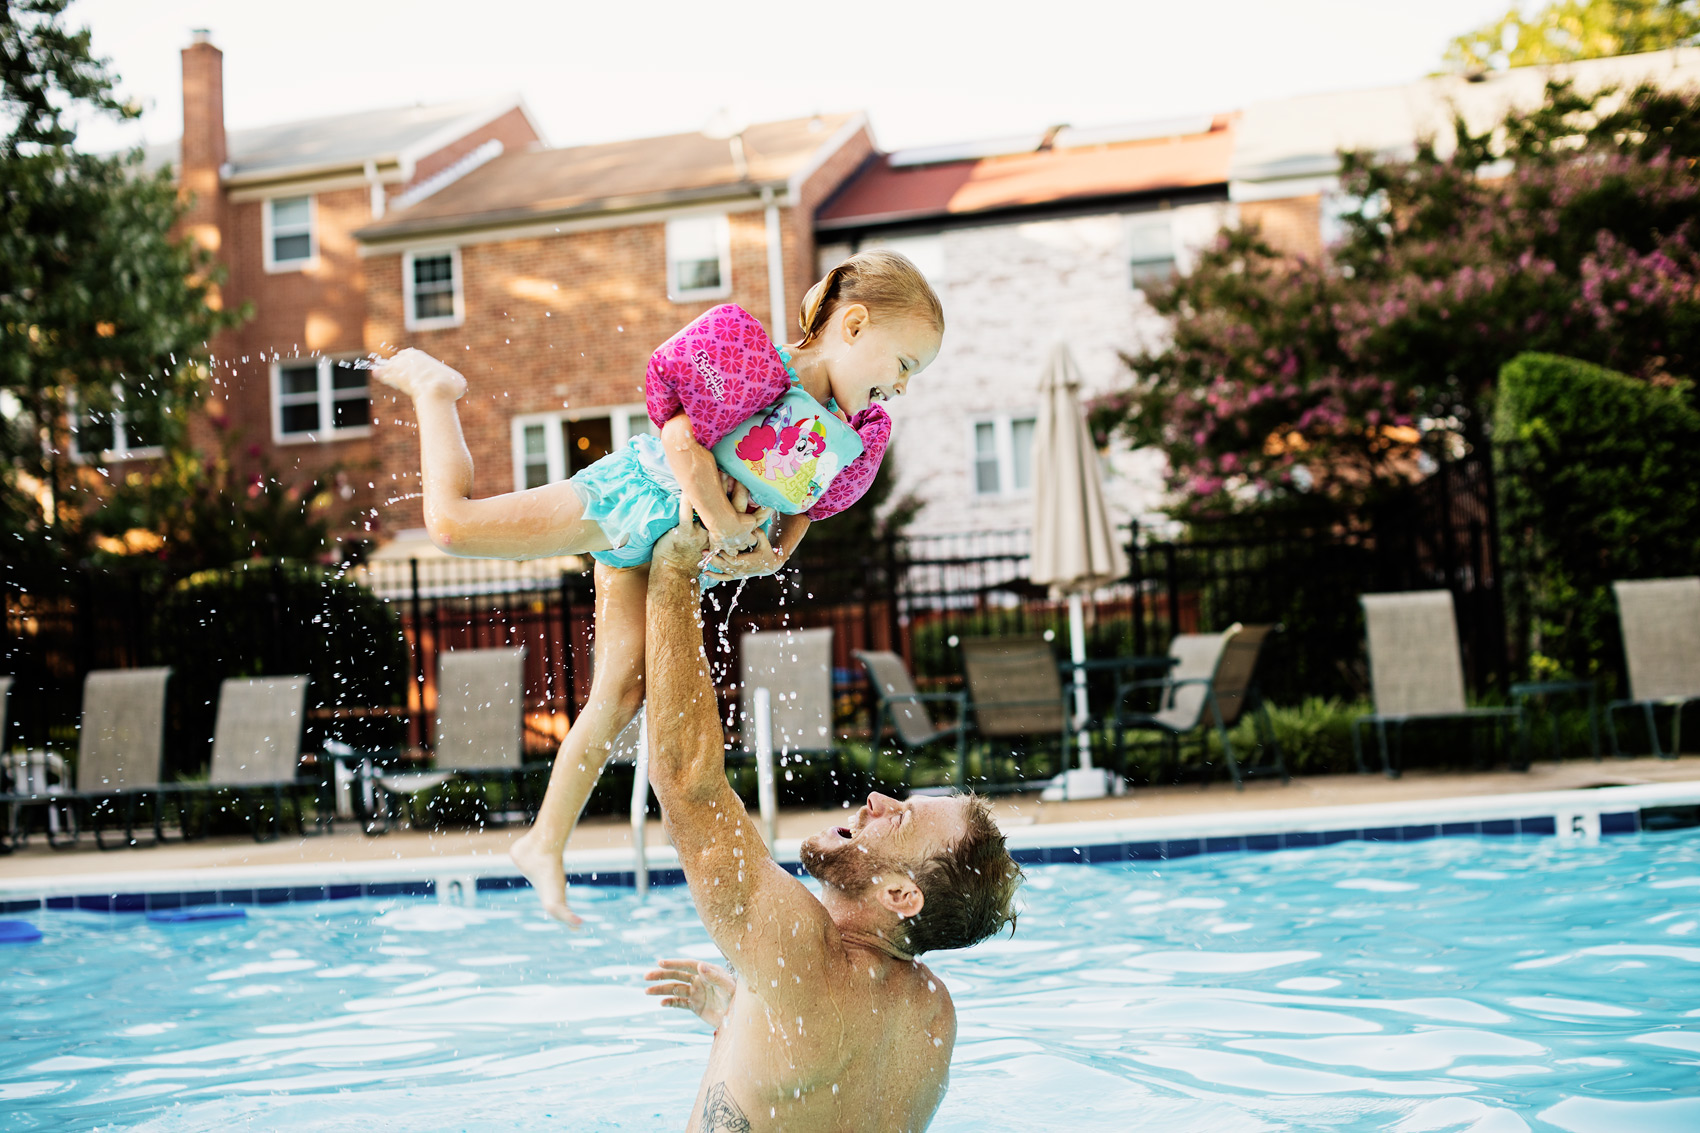 father holding up daughter with floaties in pool, washington dc commercial photography